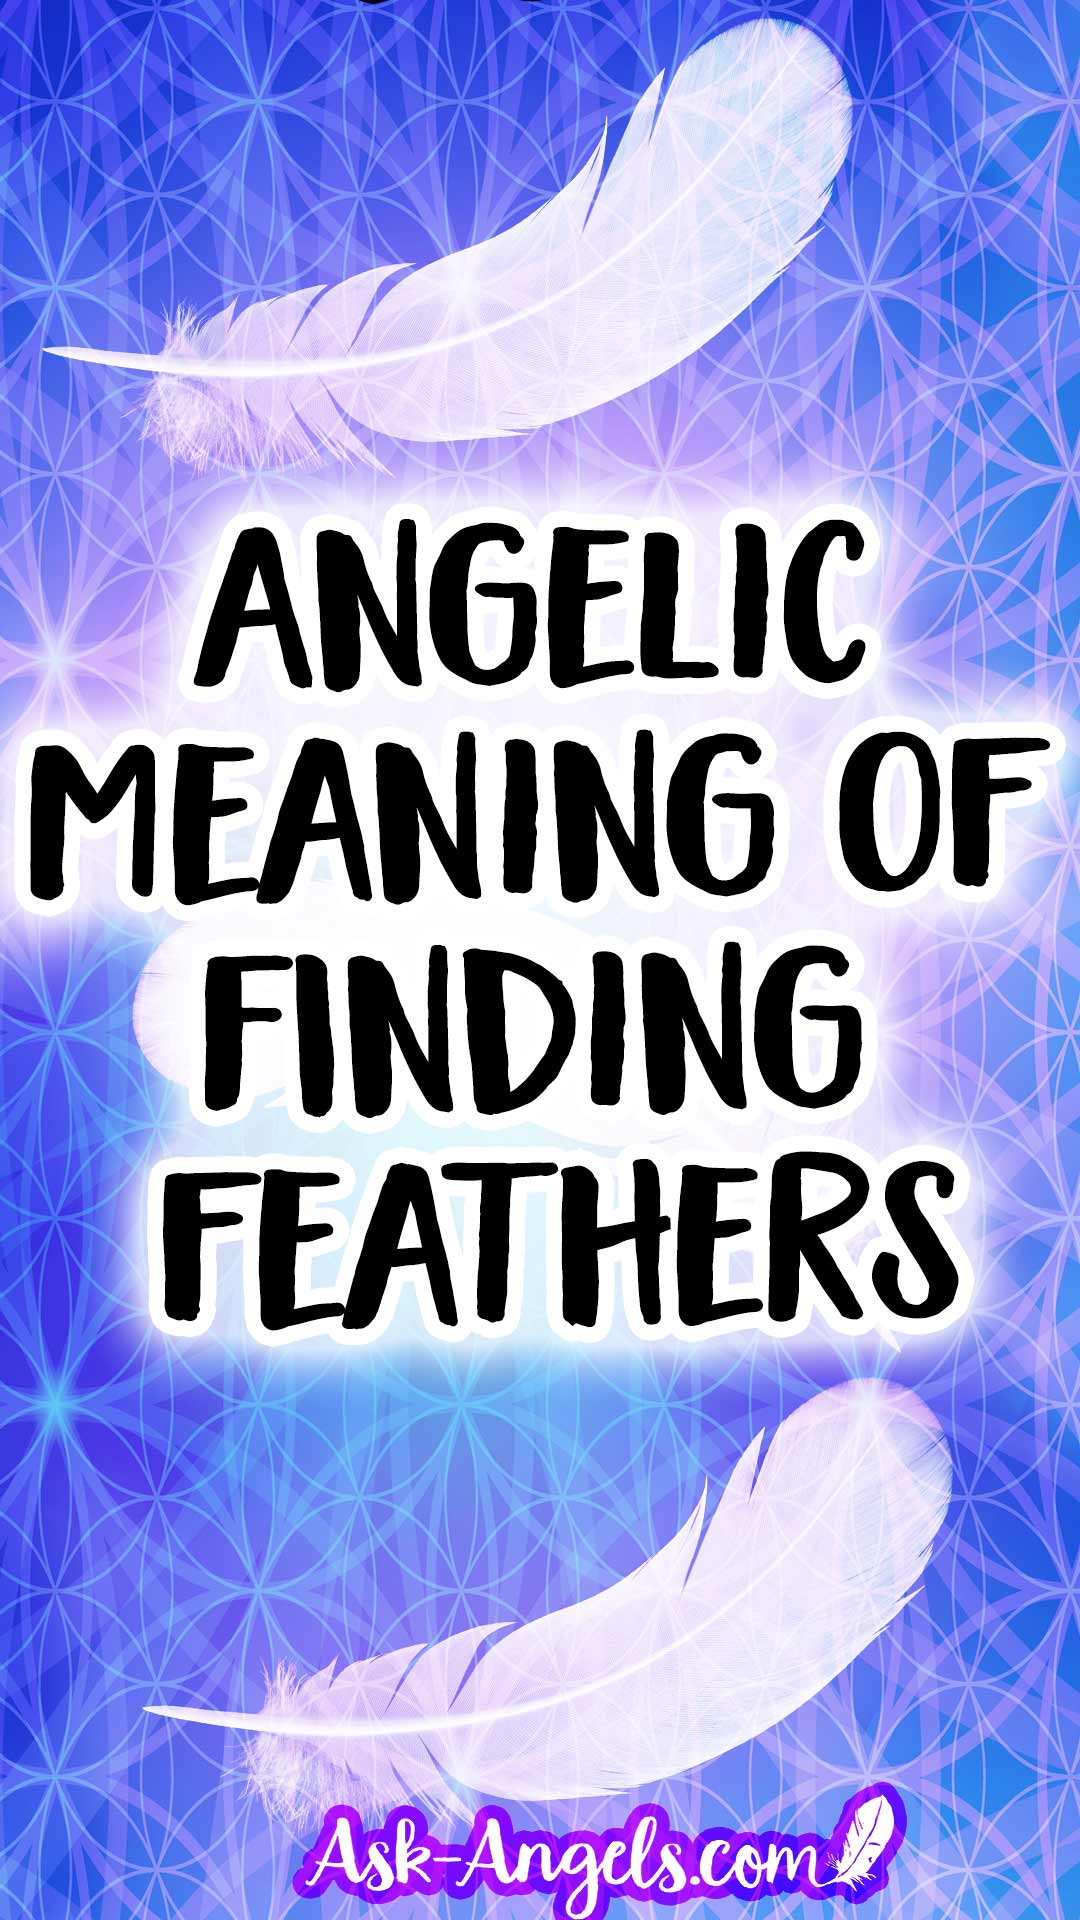 Angelic Meaning of Feathers